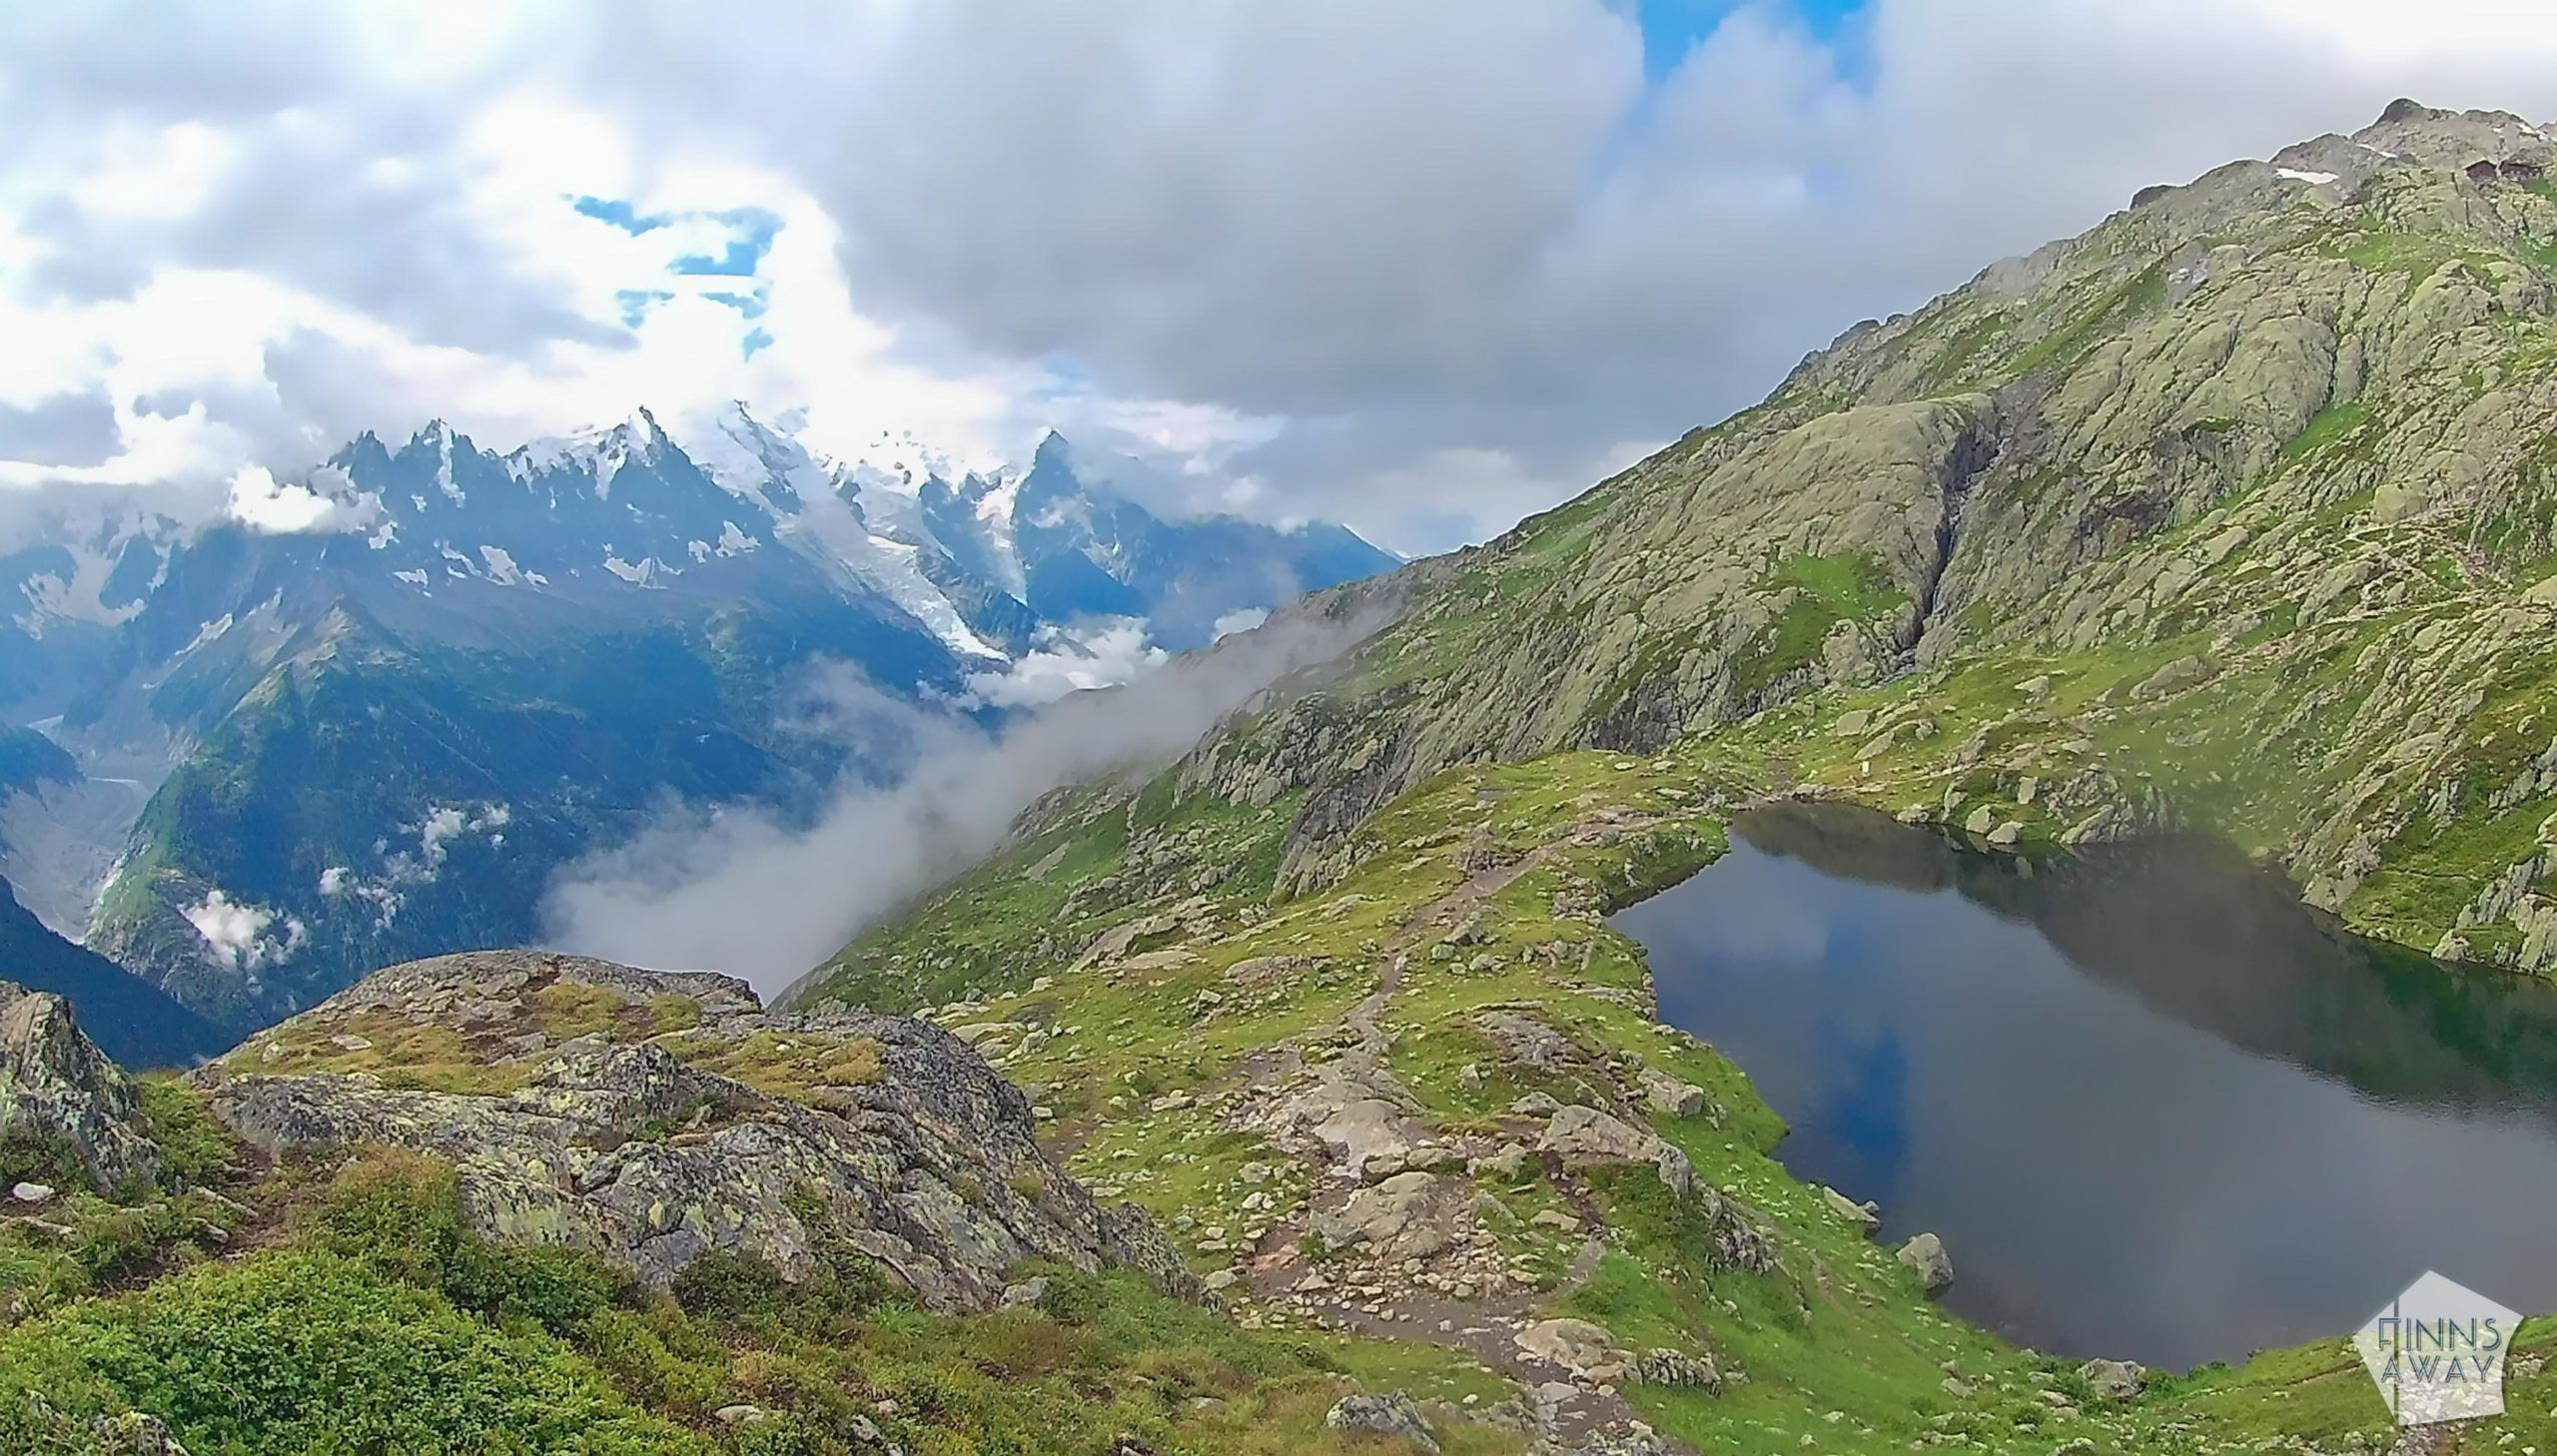 Lacs de Cheserys | Hiking and camping Tour du Mont Blanc mountain trail in the Alps | FinnsAway travel blog